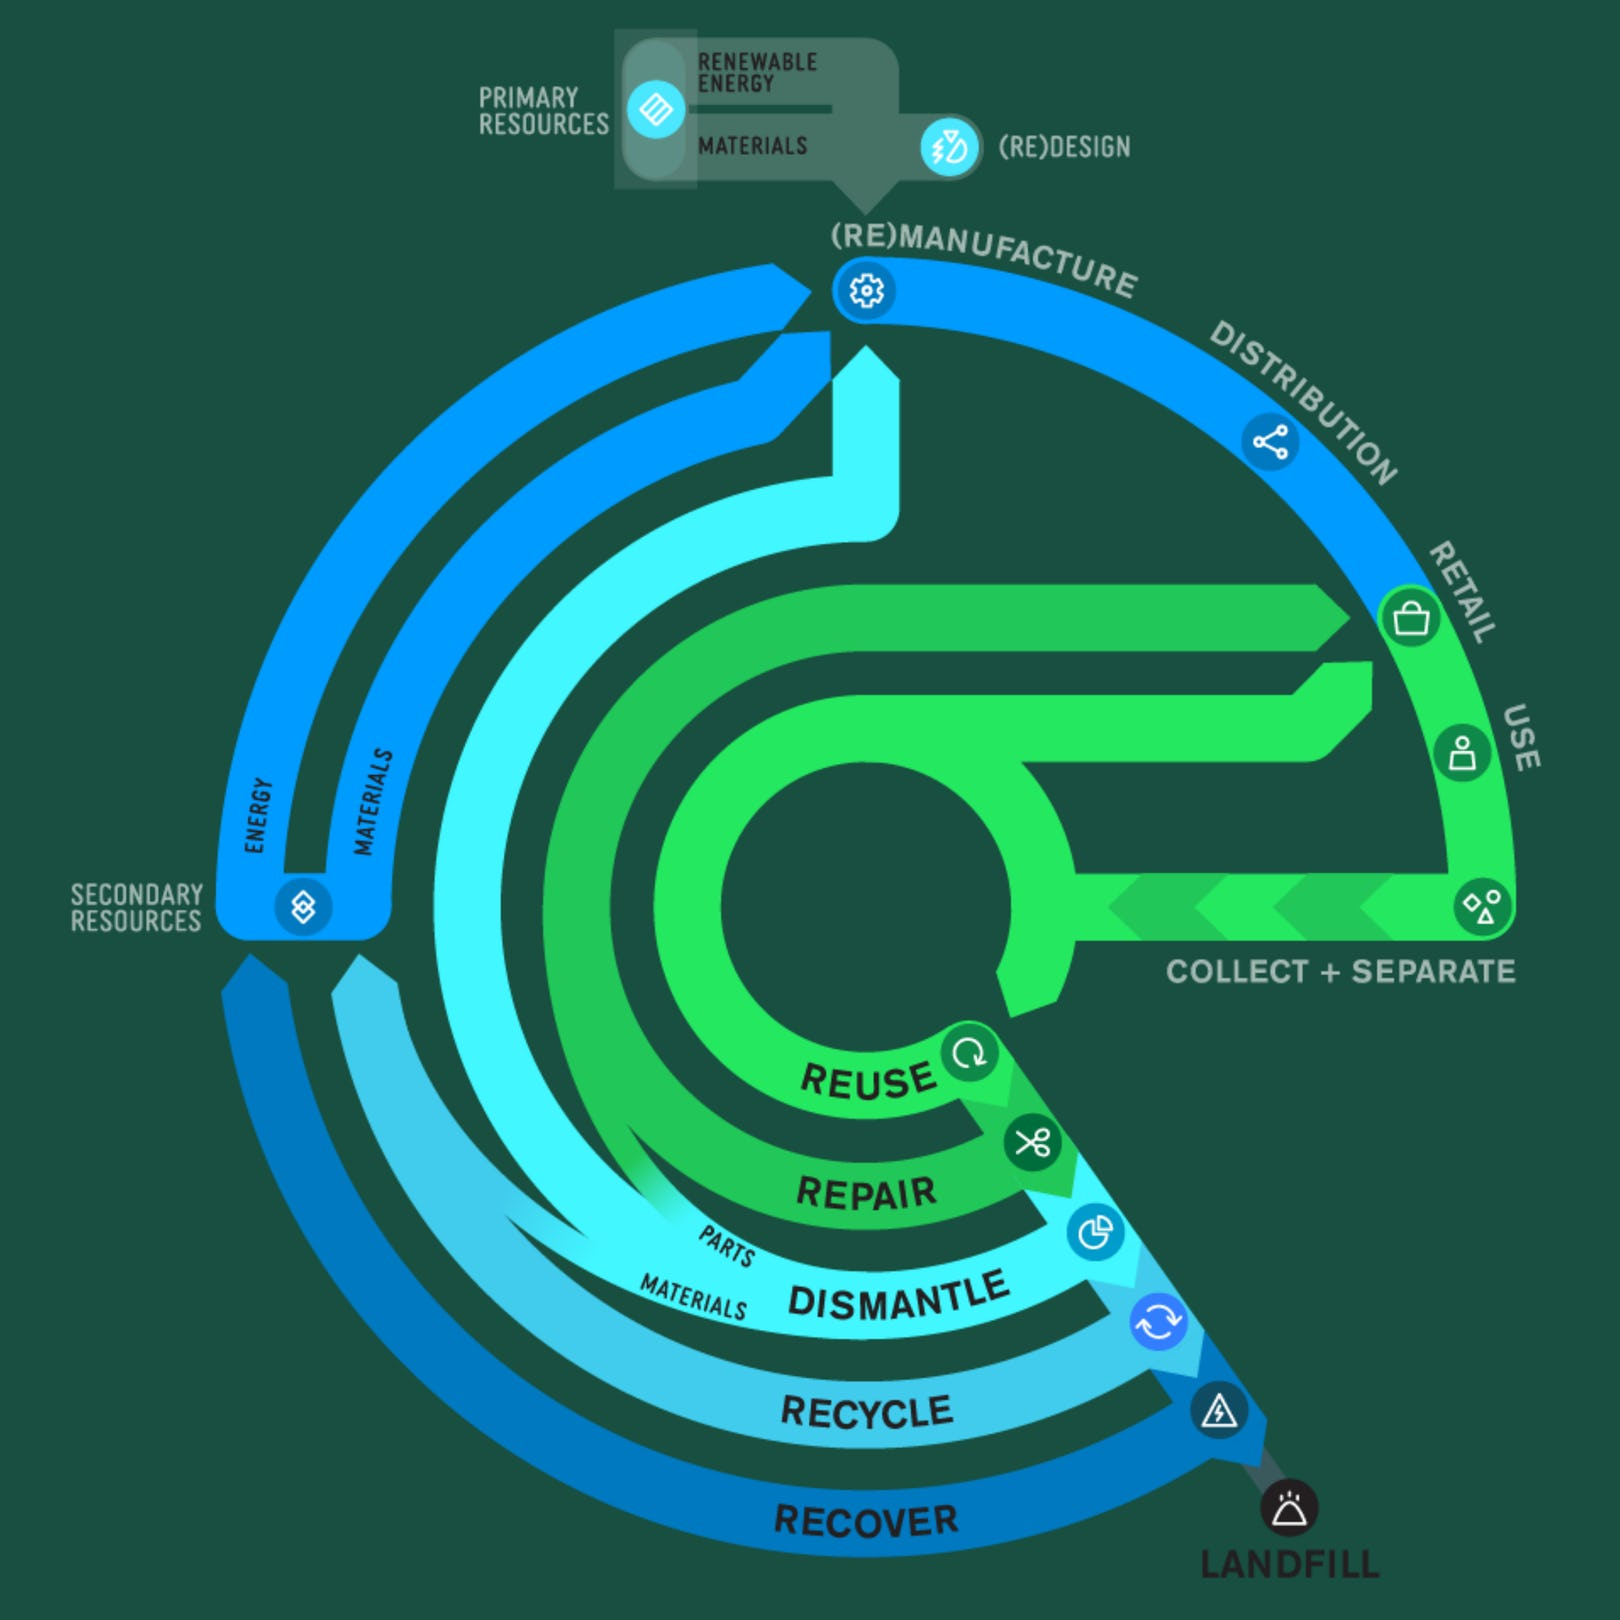 The circular economy is made up of businesses that do one or more of the following: reuse, repair, dismantle, recycle or recover their products.